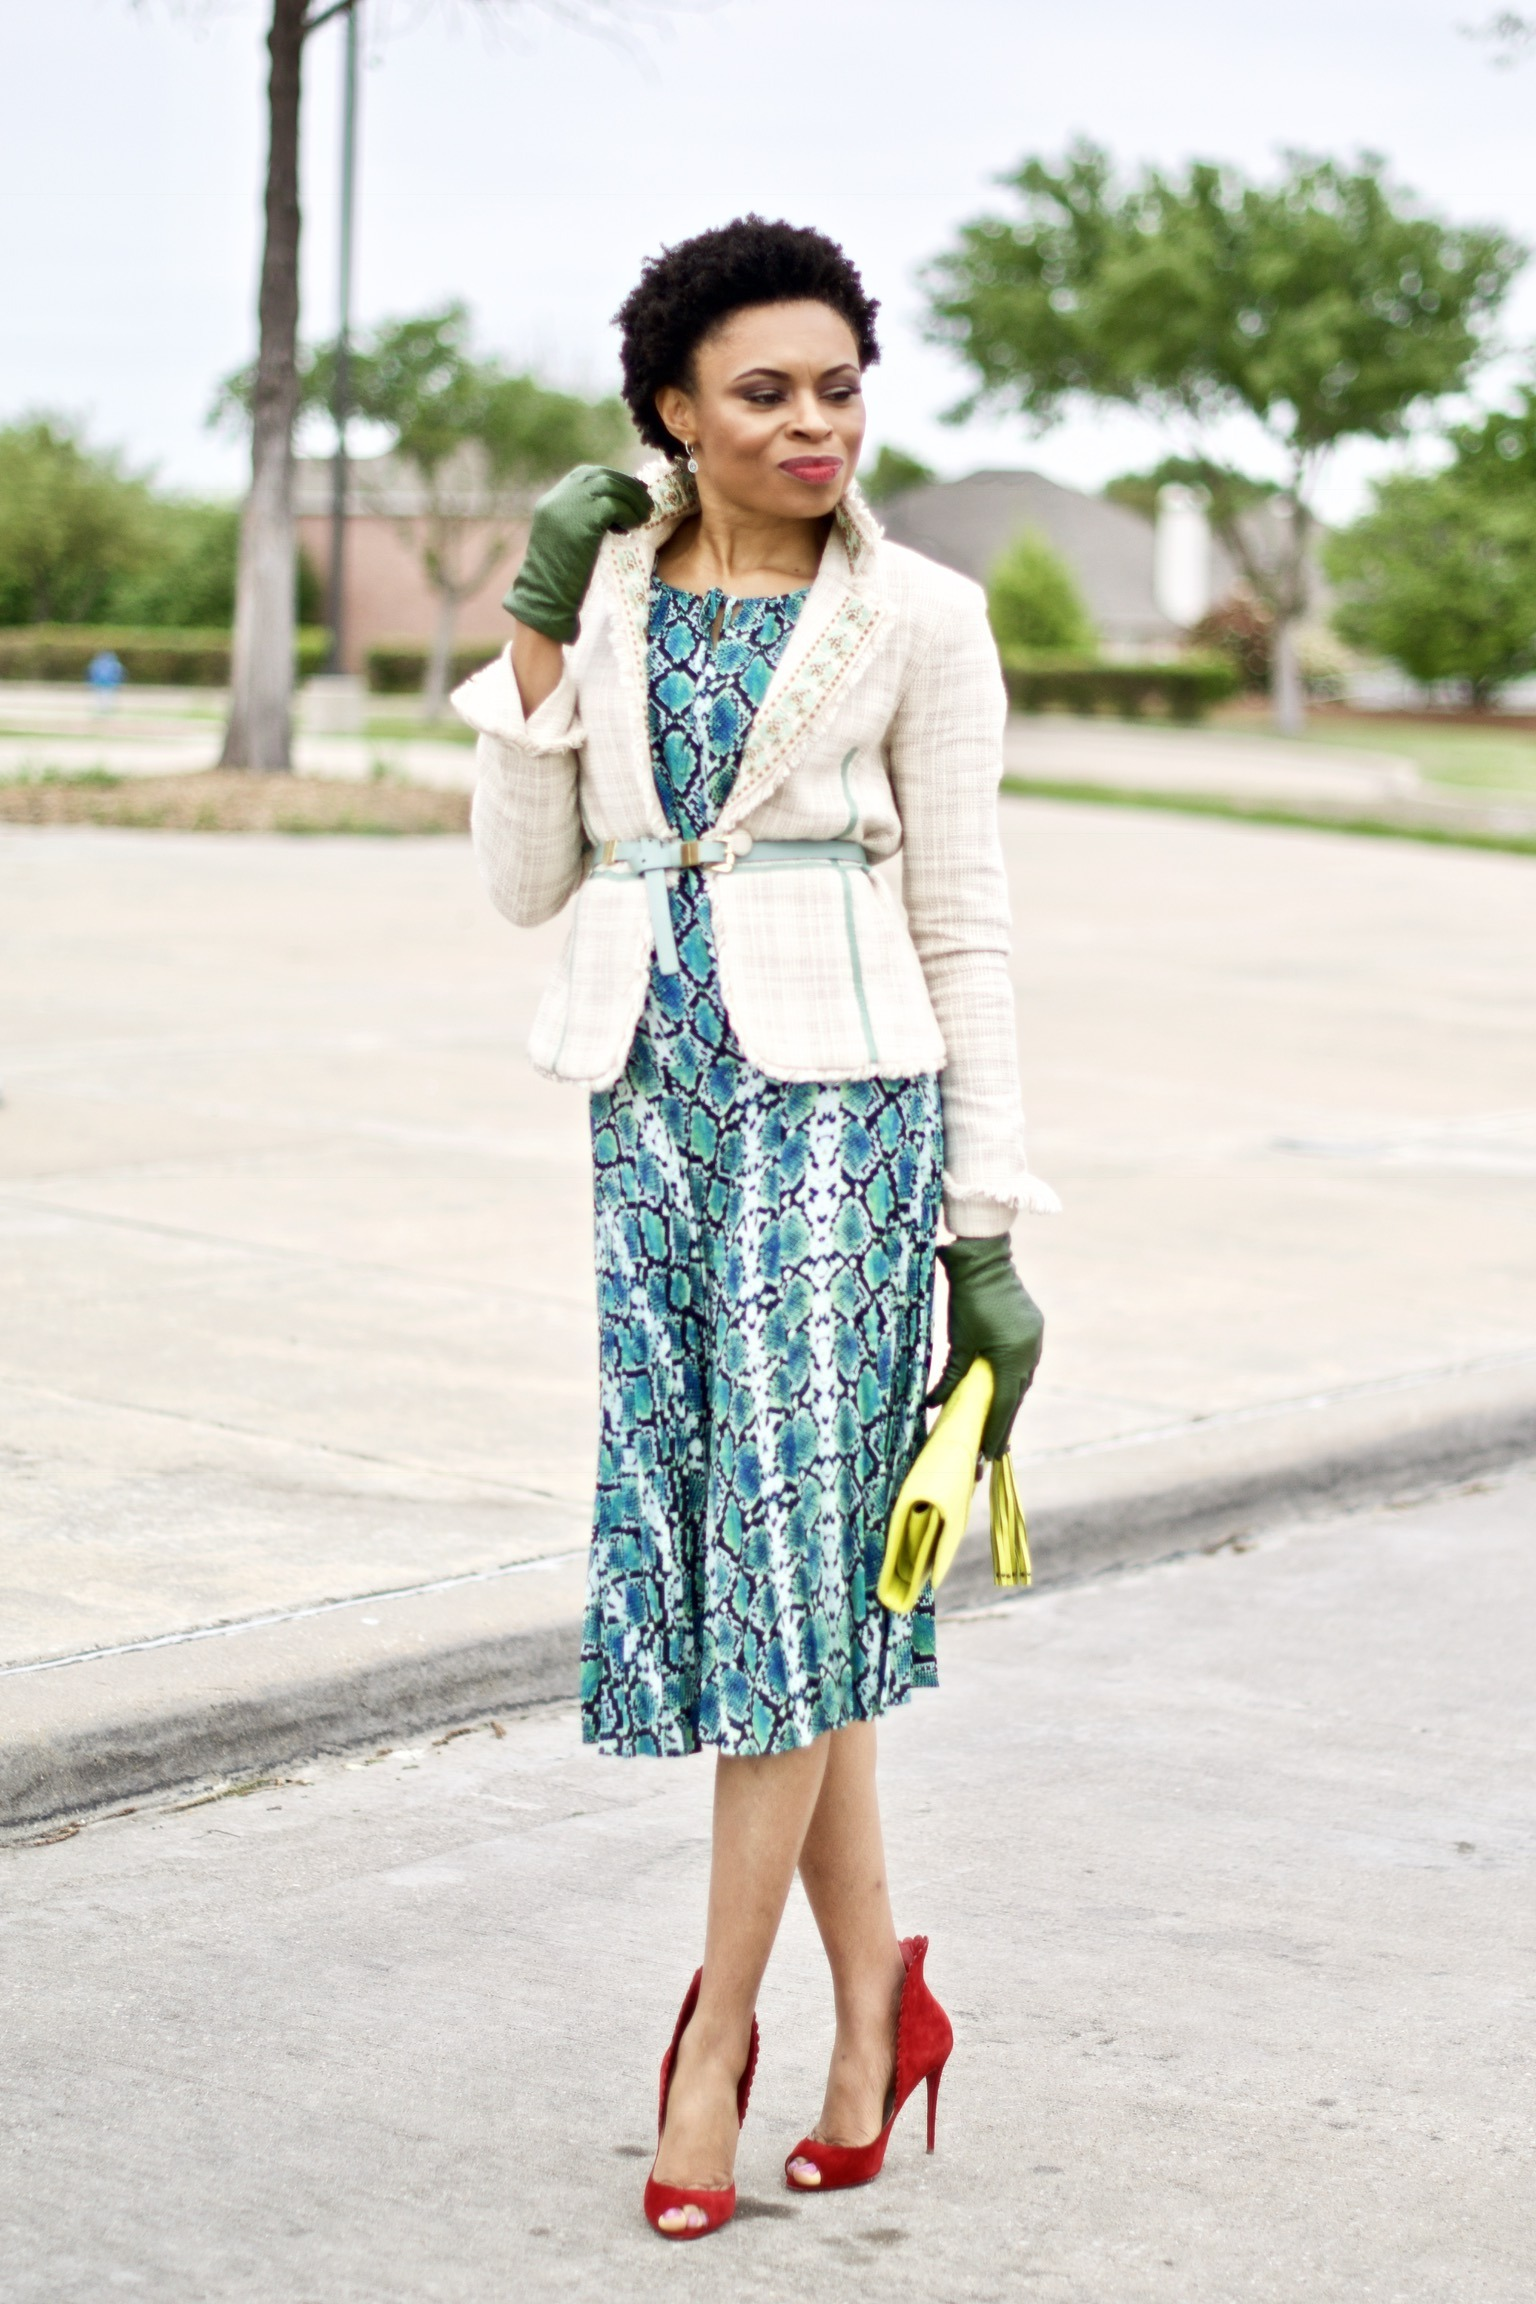 Styling Boucle Blazer + Midi dress for spring